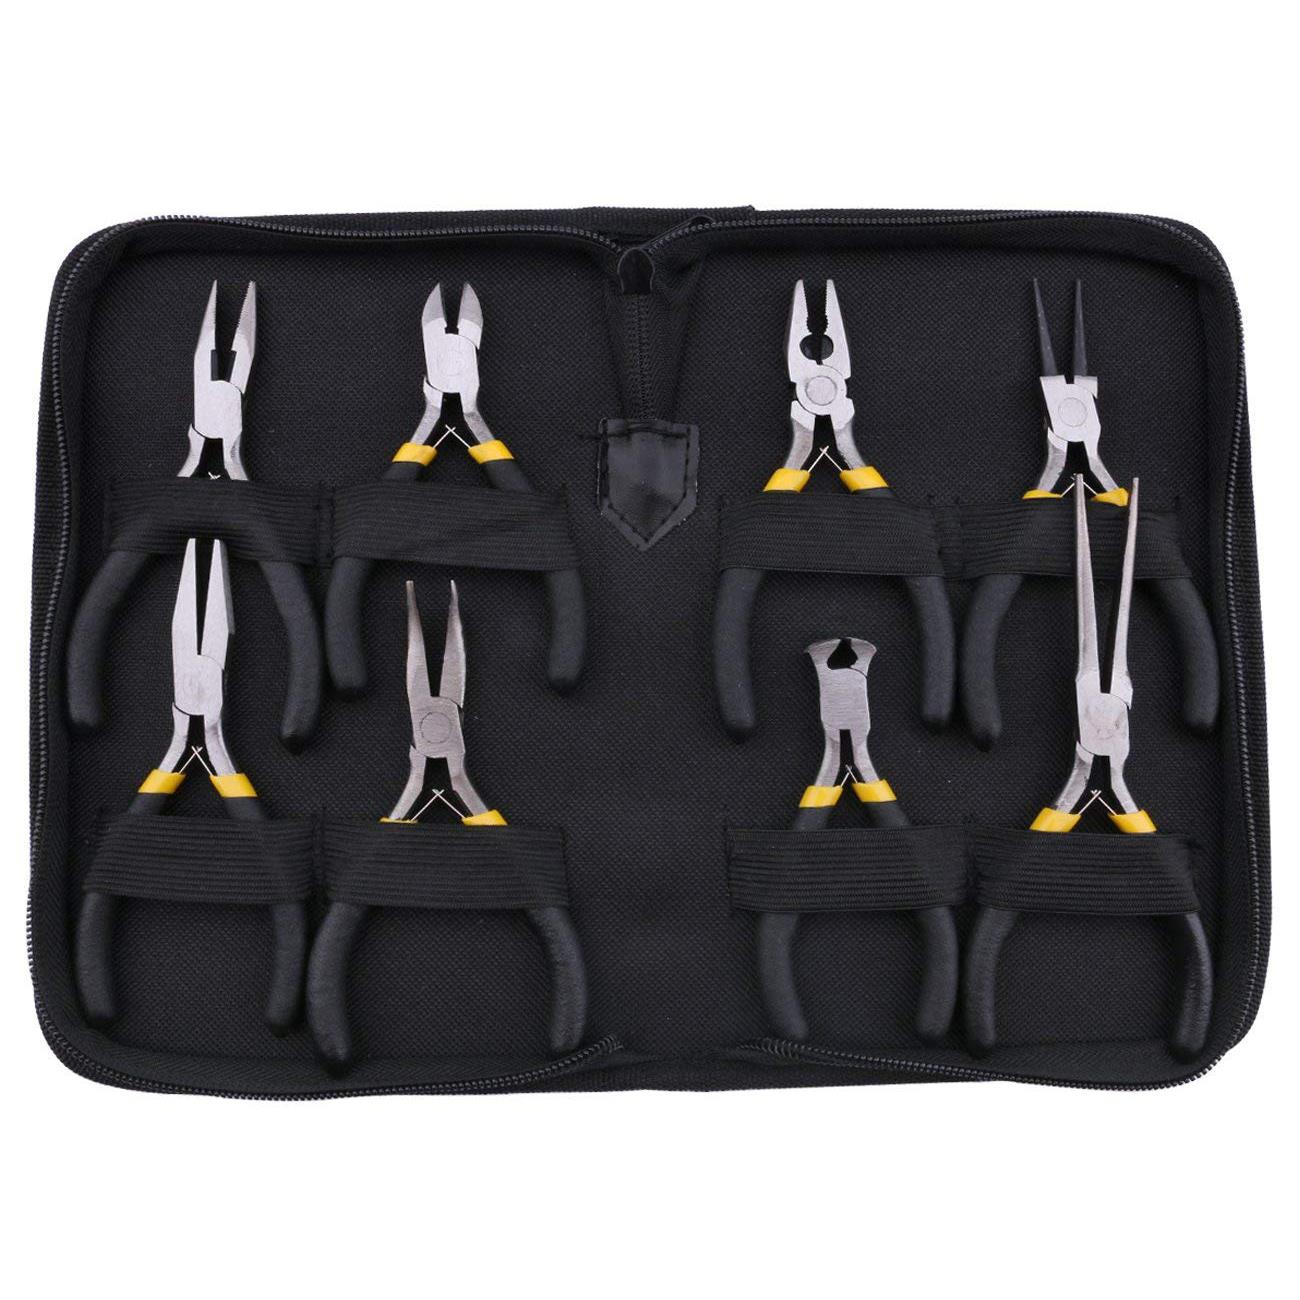 HLZS-8PCs Mini Pliers Set, Long Nose With Teeth, Flat Jaw, Round Curve Needle Diagonal Nose Wire End Cutting Cutter Linesman P